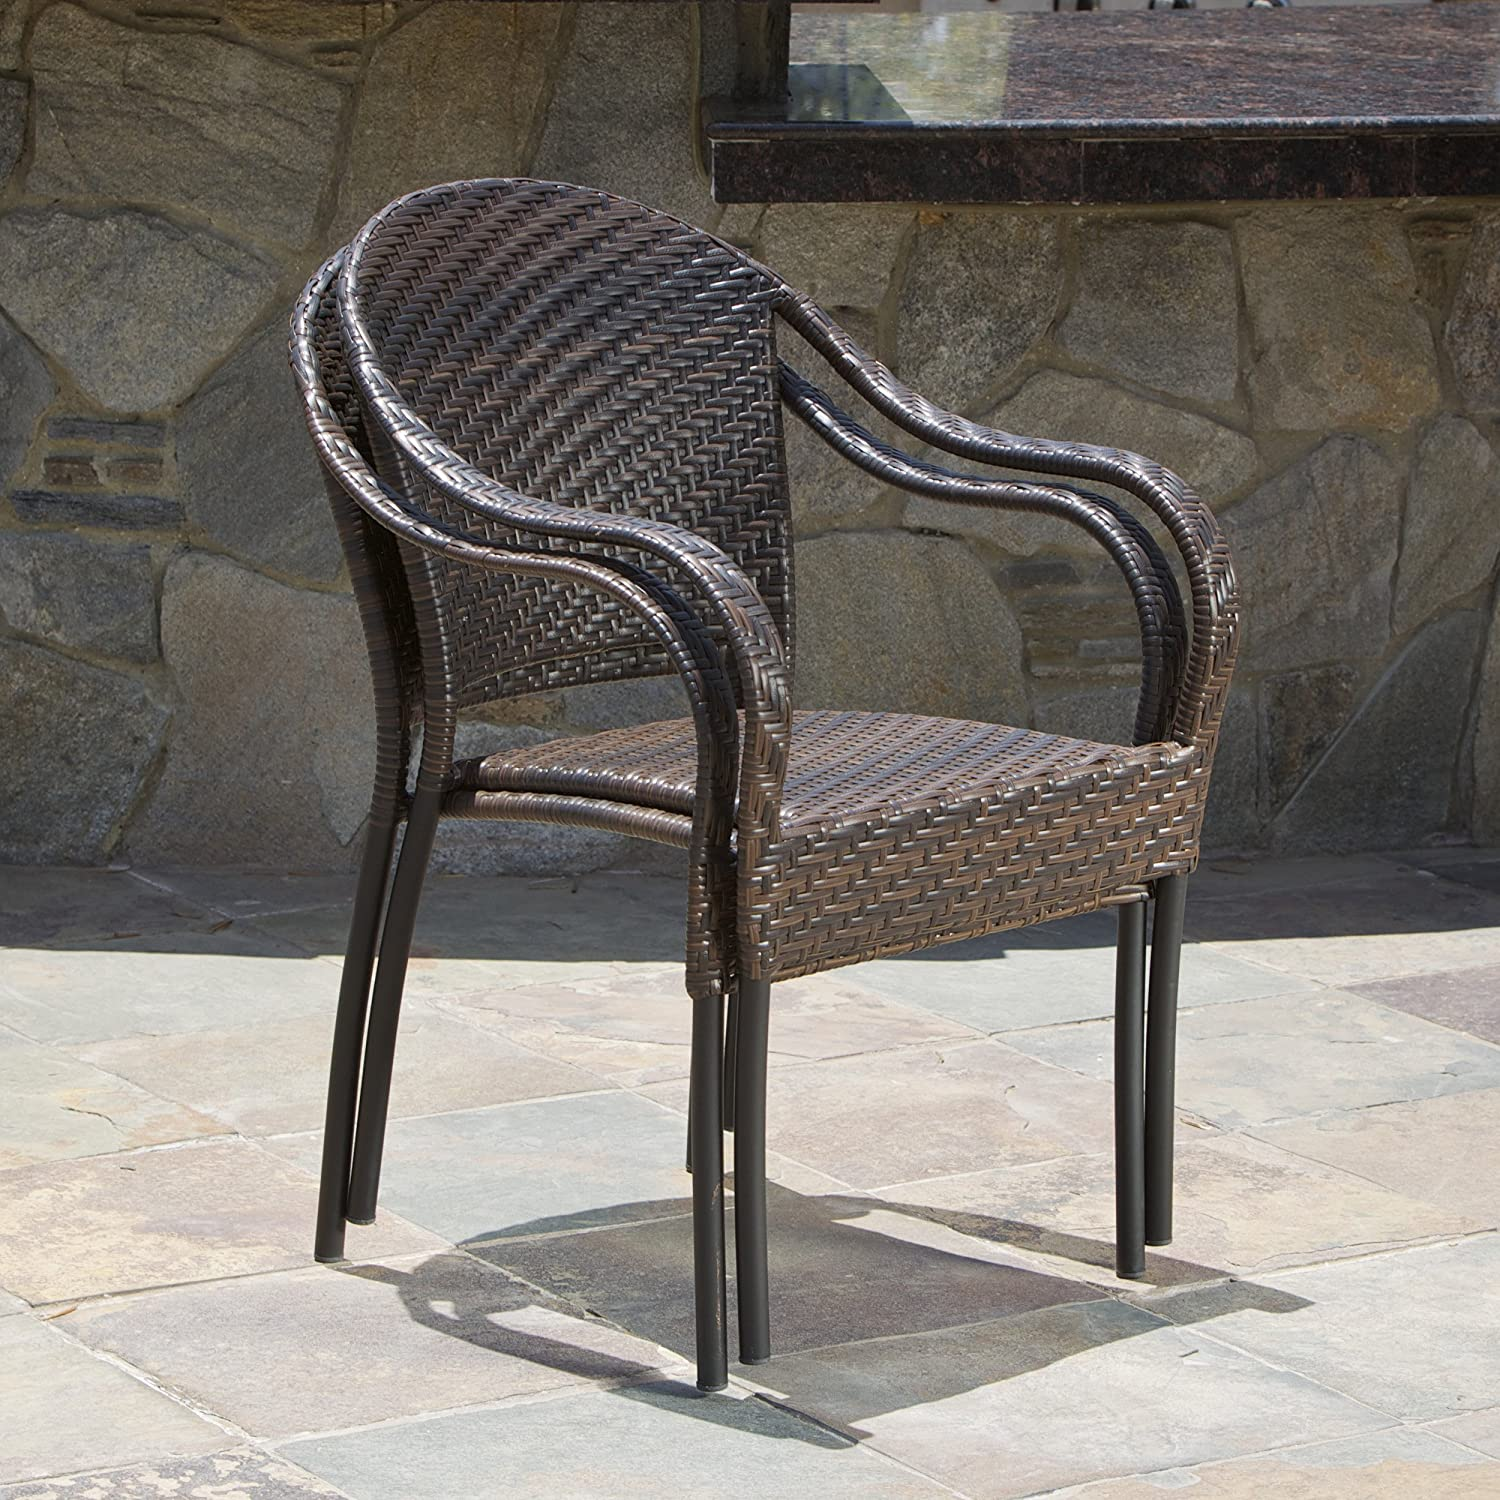 Great Deal Furniture 216404 Set of 2 Outdoor Stackable Wicker Dining Armchairs, Brown